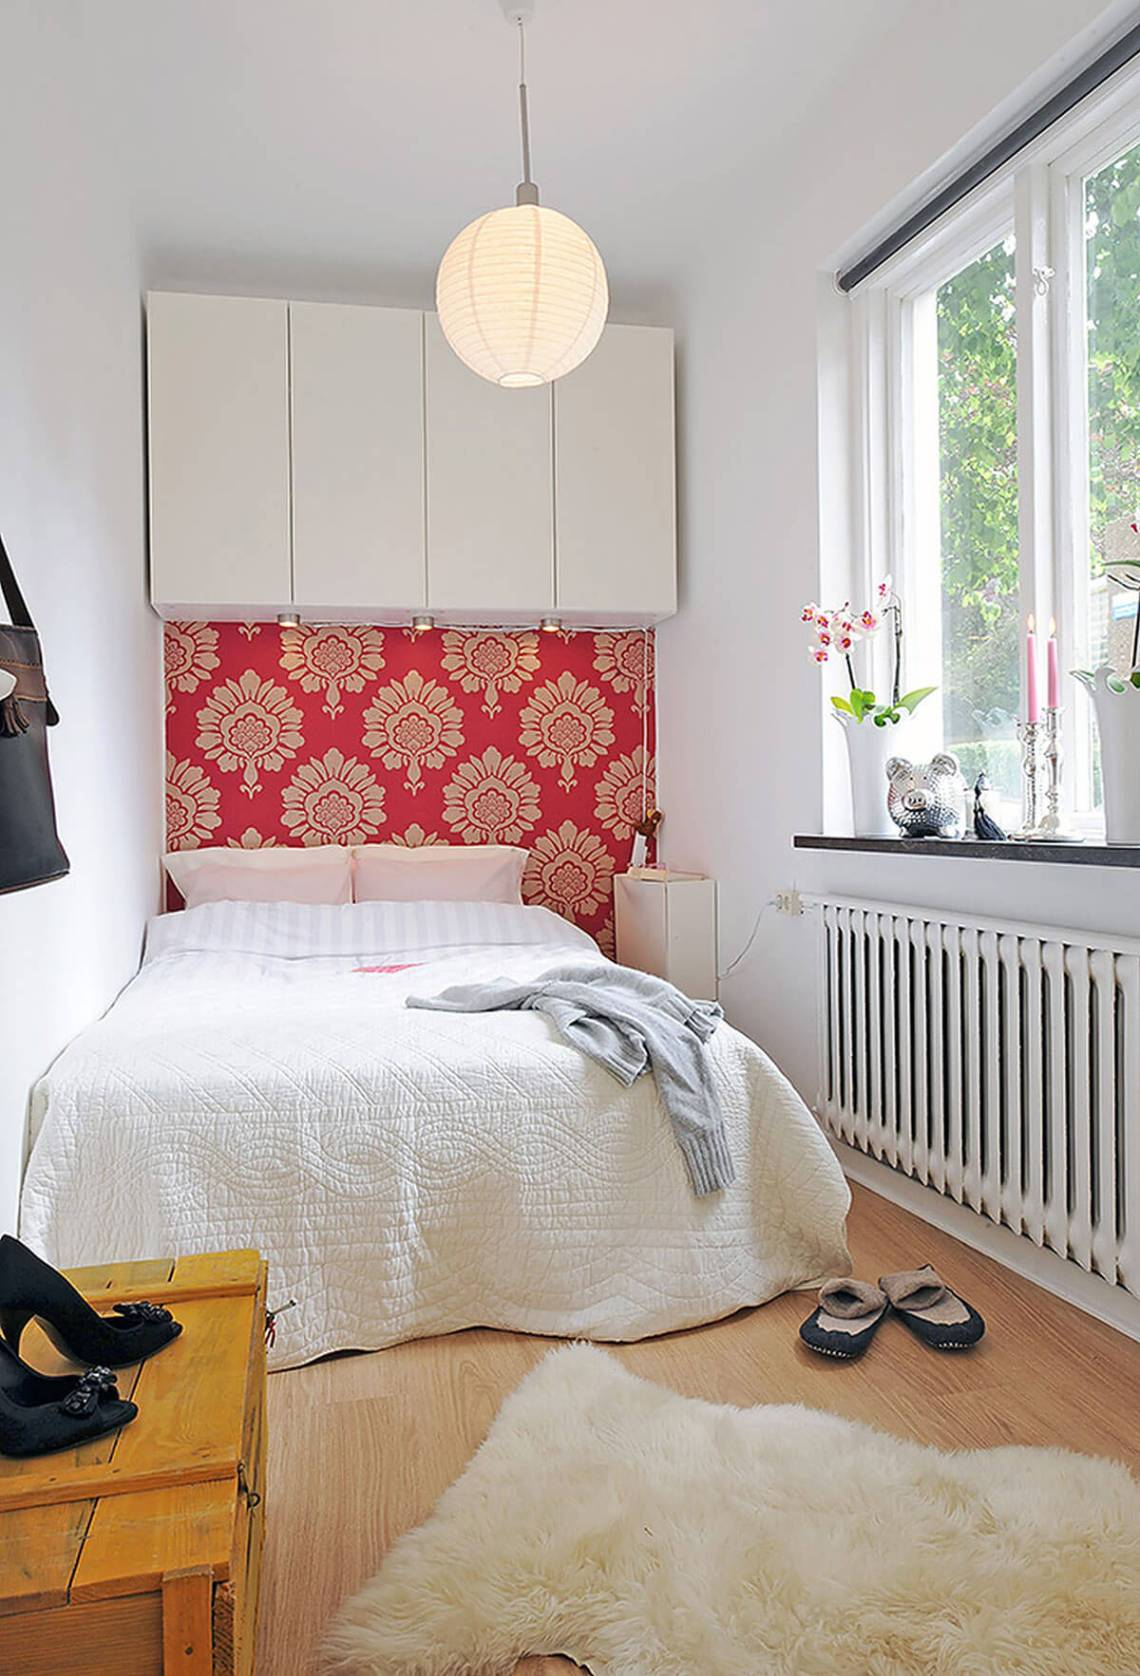 50+ Best Small Bedroom Ideas and Designs for 2021